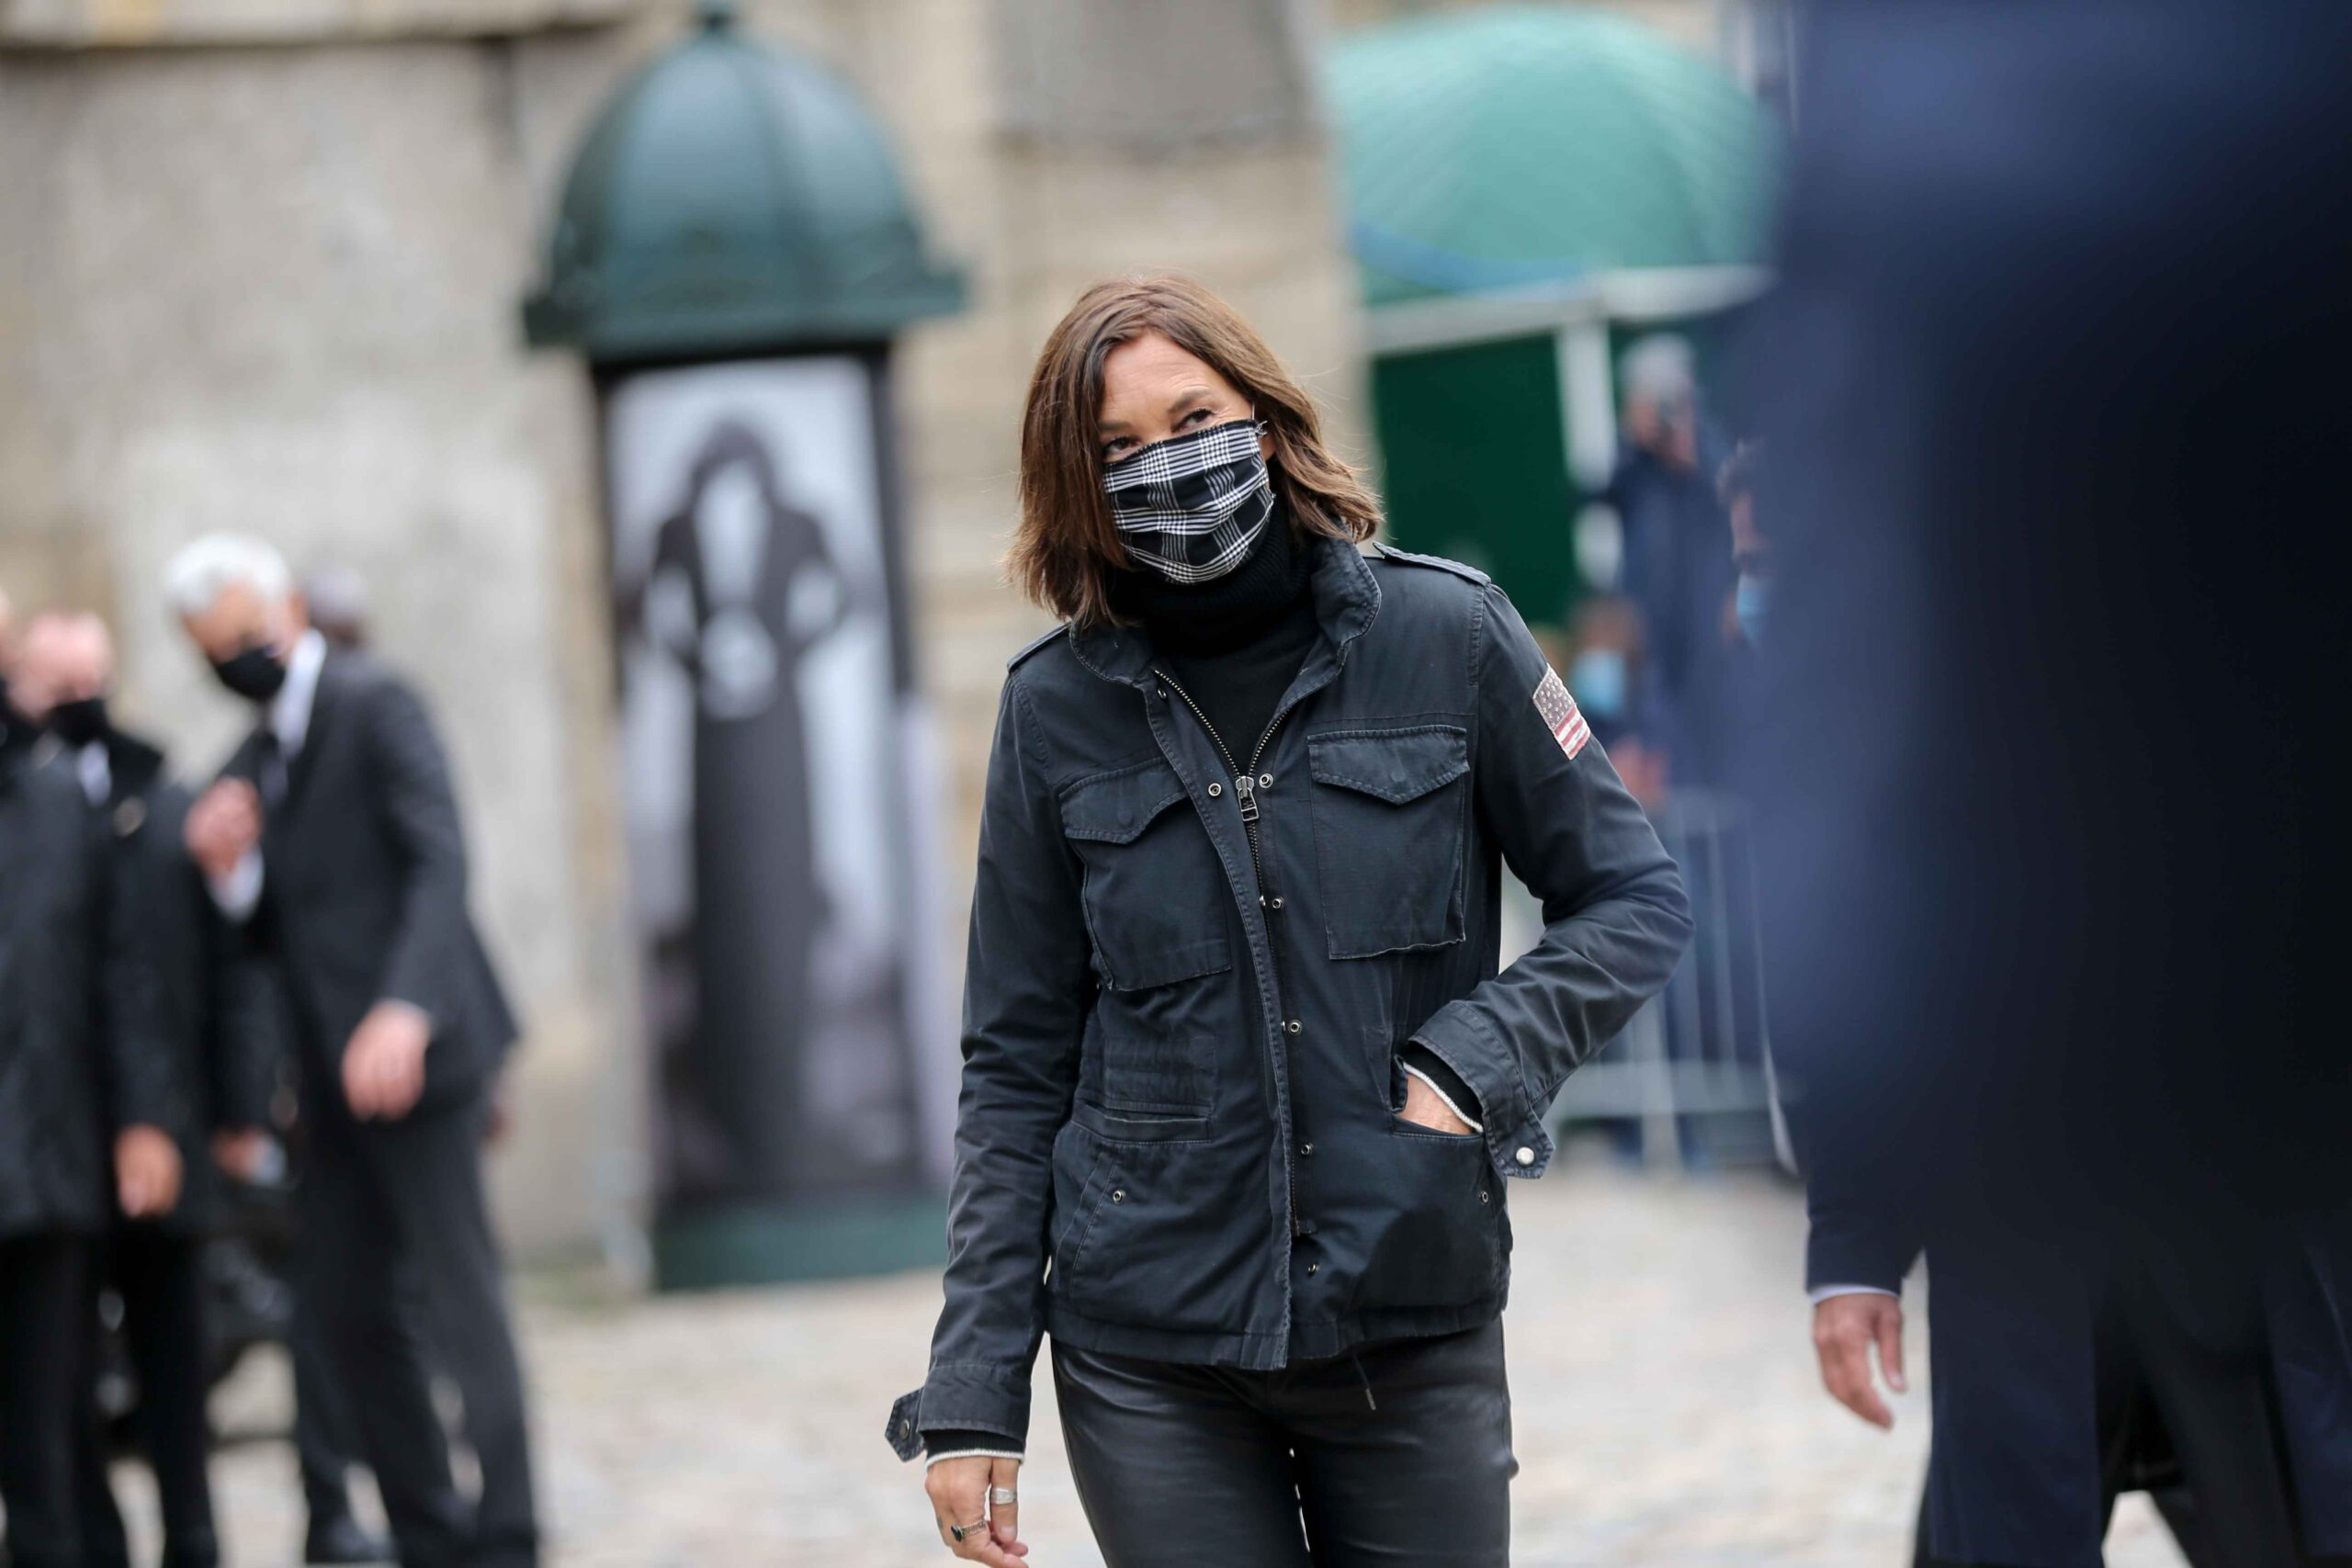 French singer Isabelle Marie Anne de Truchis de Varennes also known as Zazie arrives for the funerals of French singer Juliette Greco, at the Saint-Germain-des-Pres church in Paris, on October 5, 2020. Legendary French singer Juliette Greco whose career sp